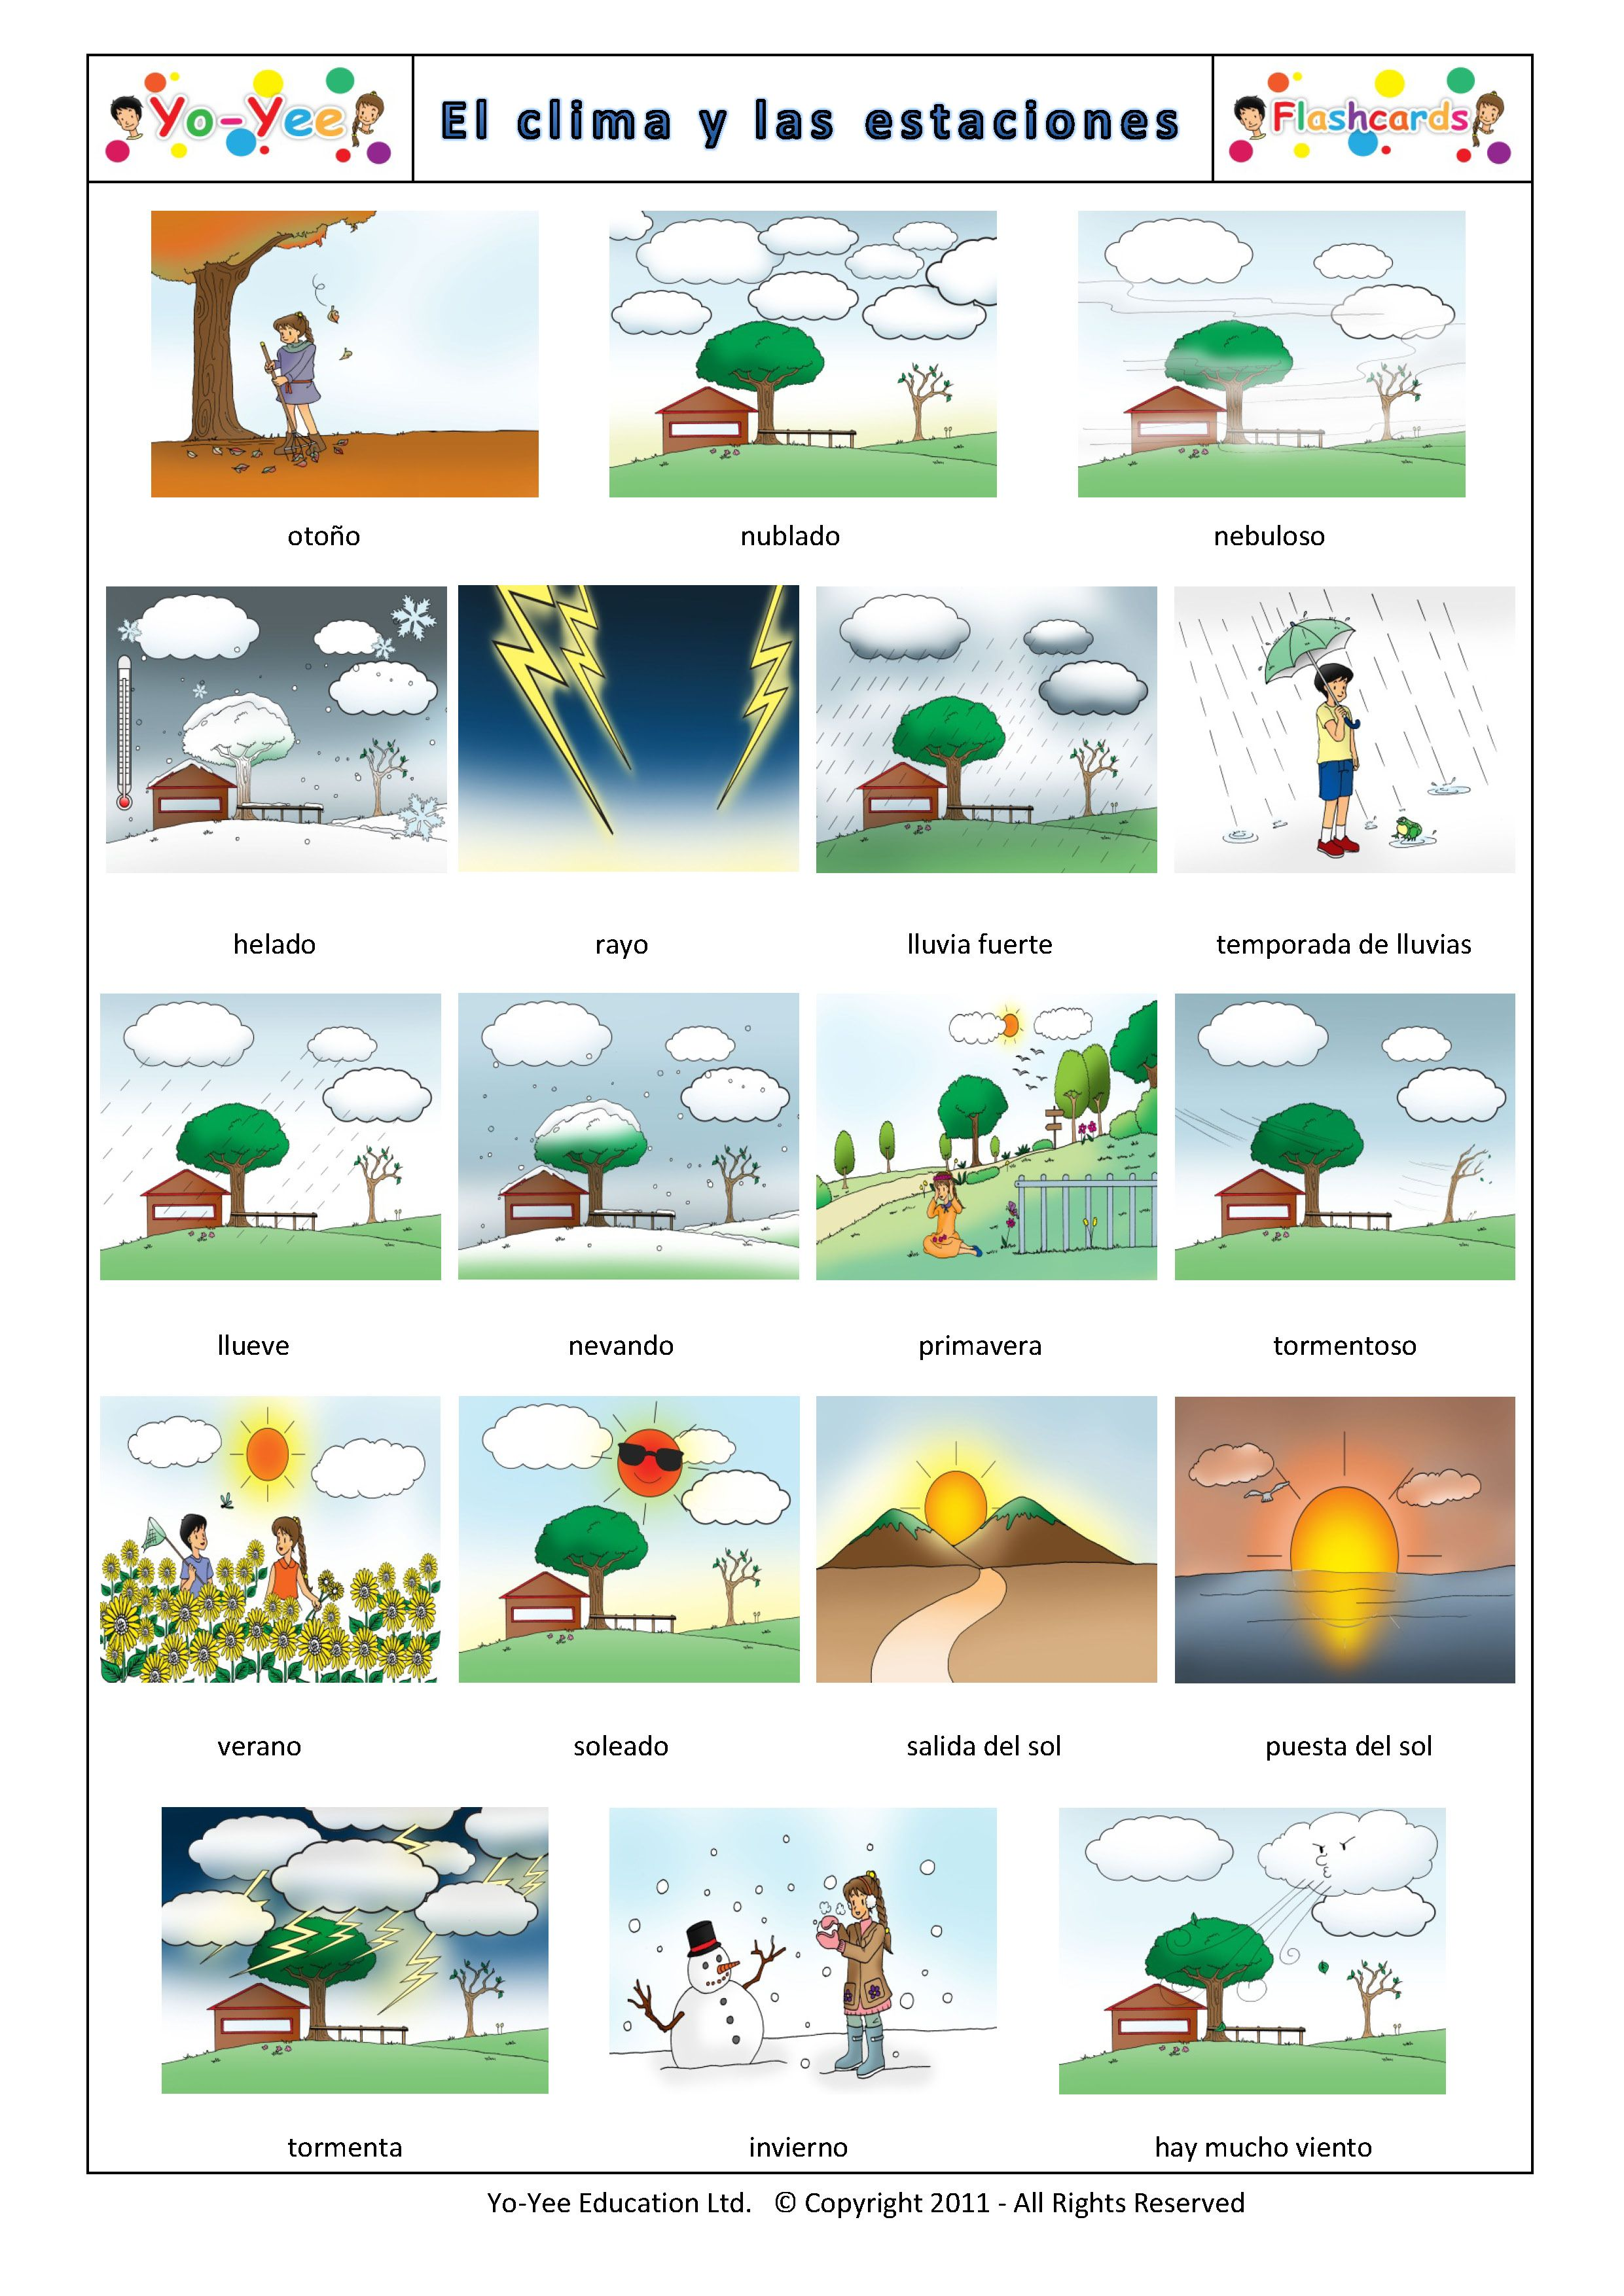 Weather And Seasons Flashcards In Spanish Yo Yee Es Spanish Step Up Flashcards 43